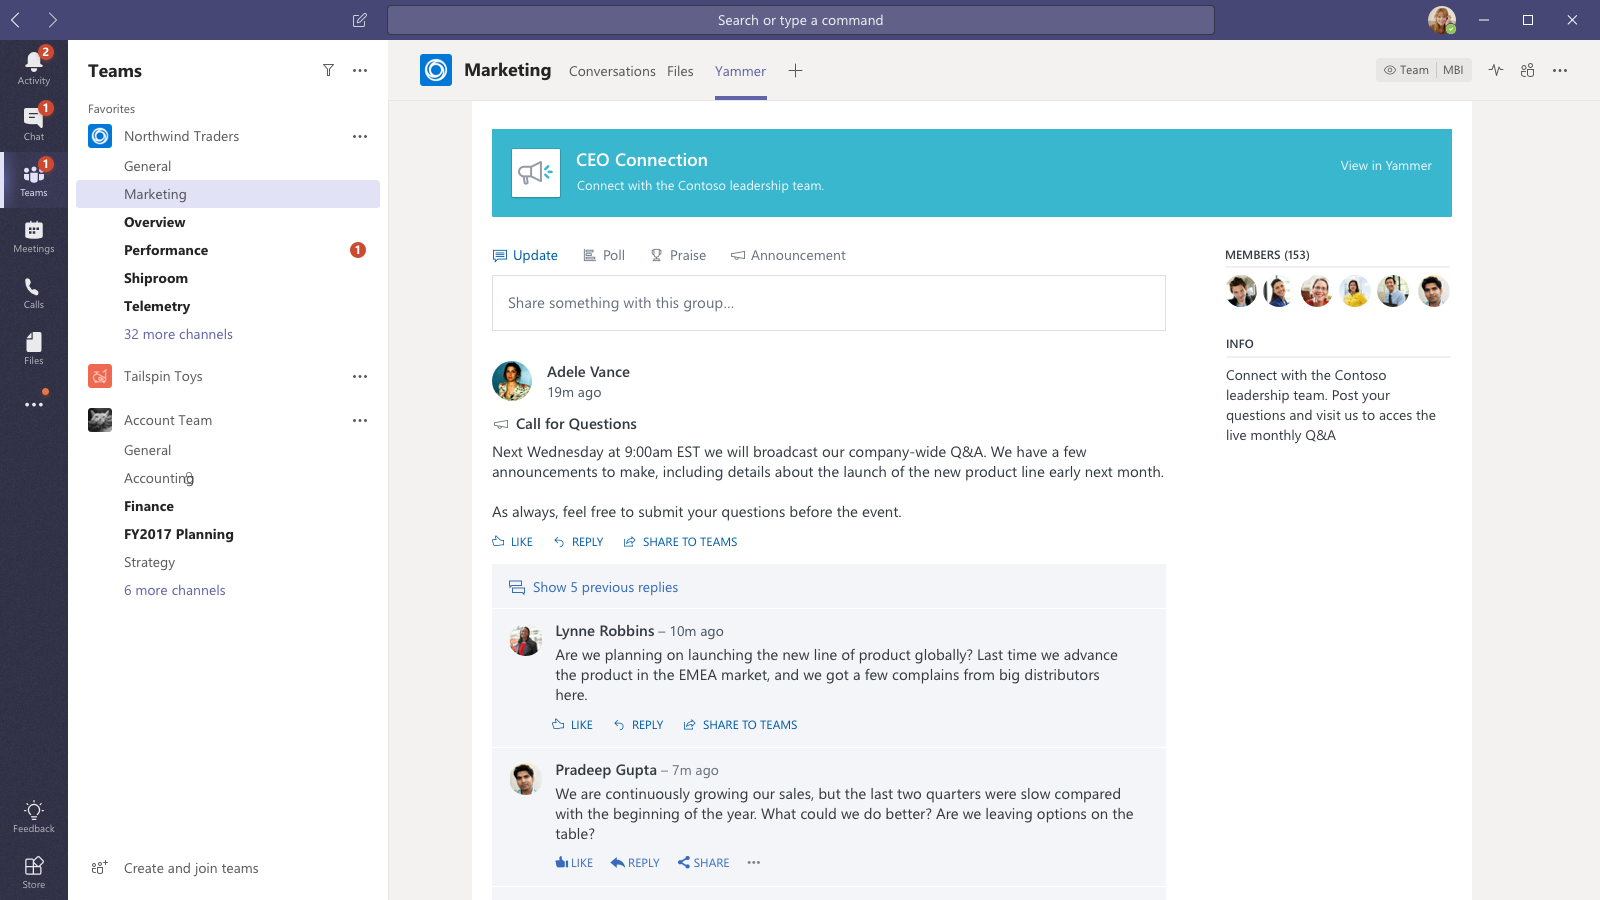 Celebrating 10 years and the future of Yammer - Microsoft